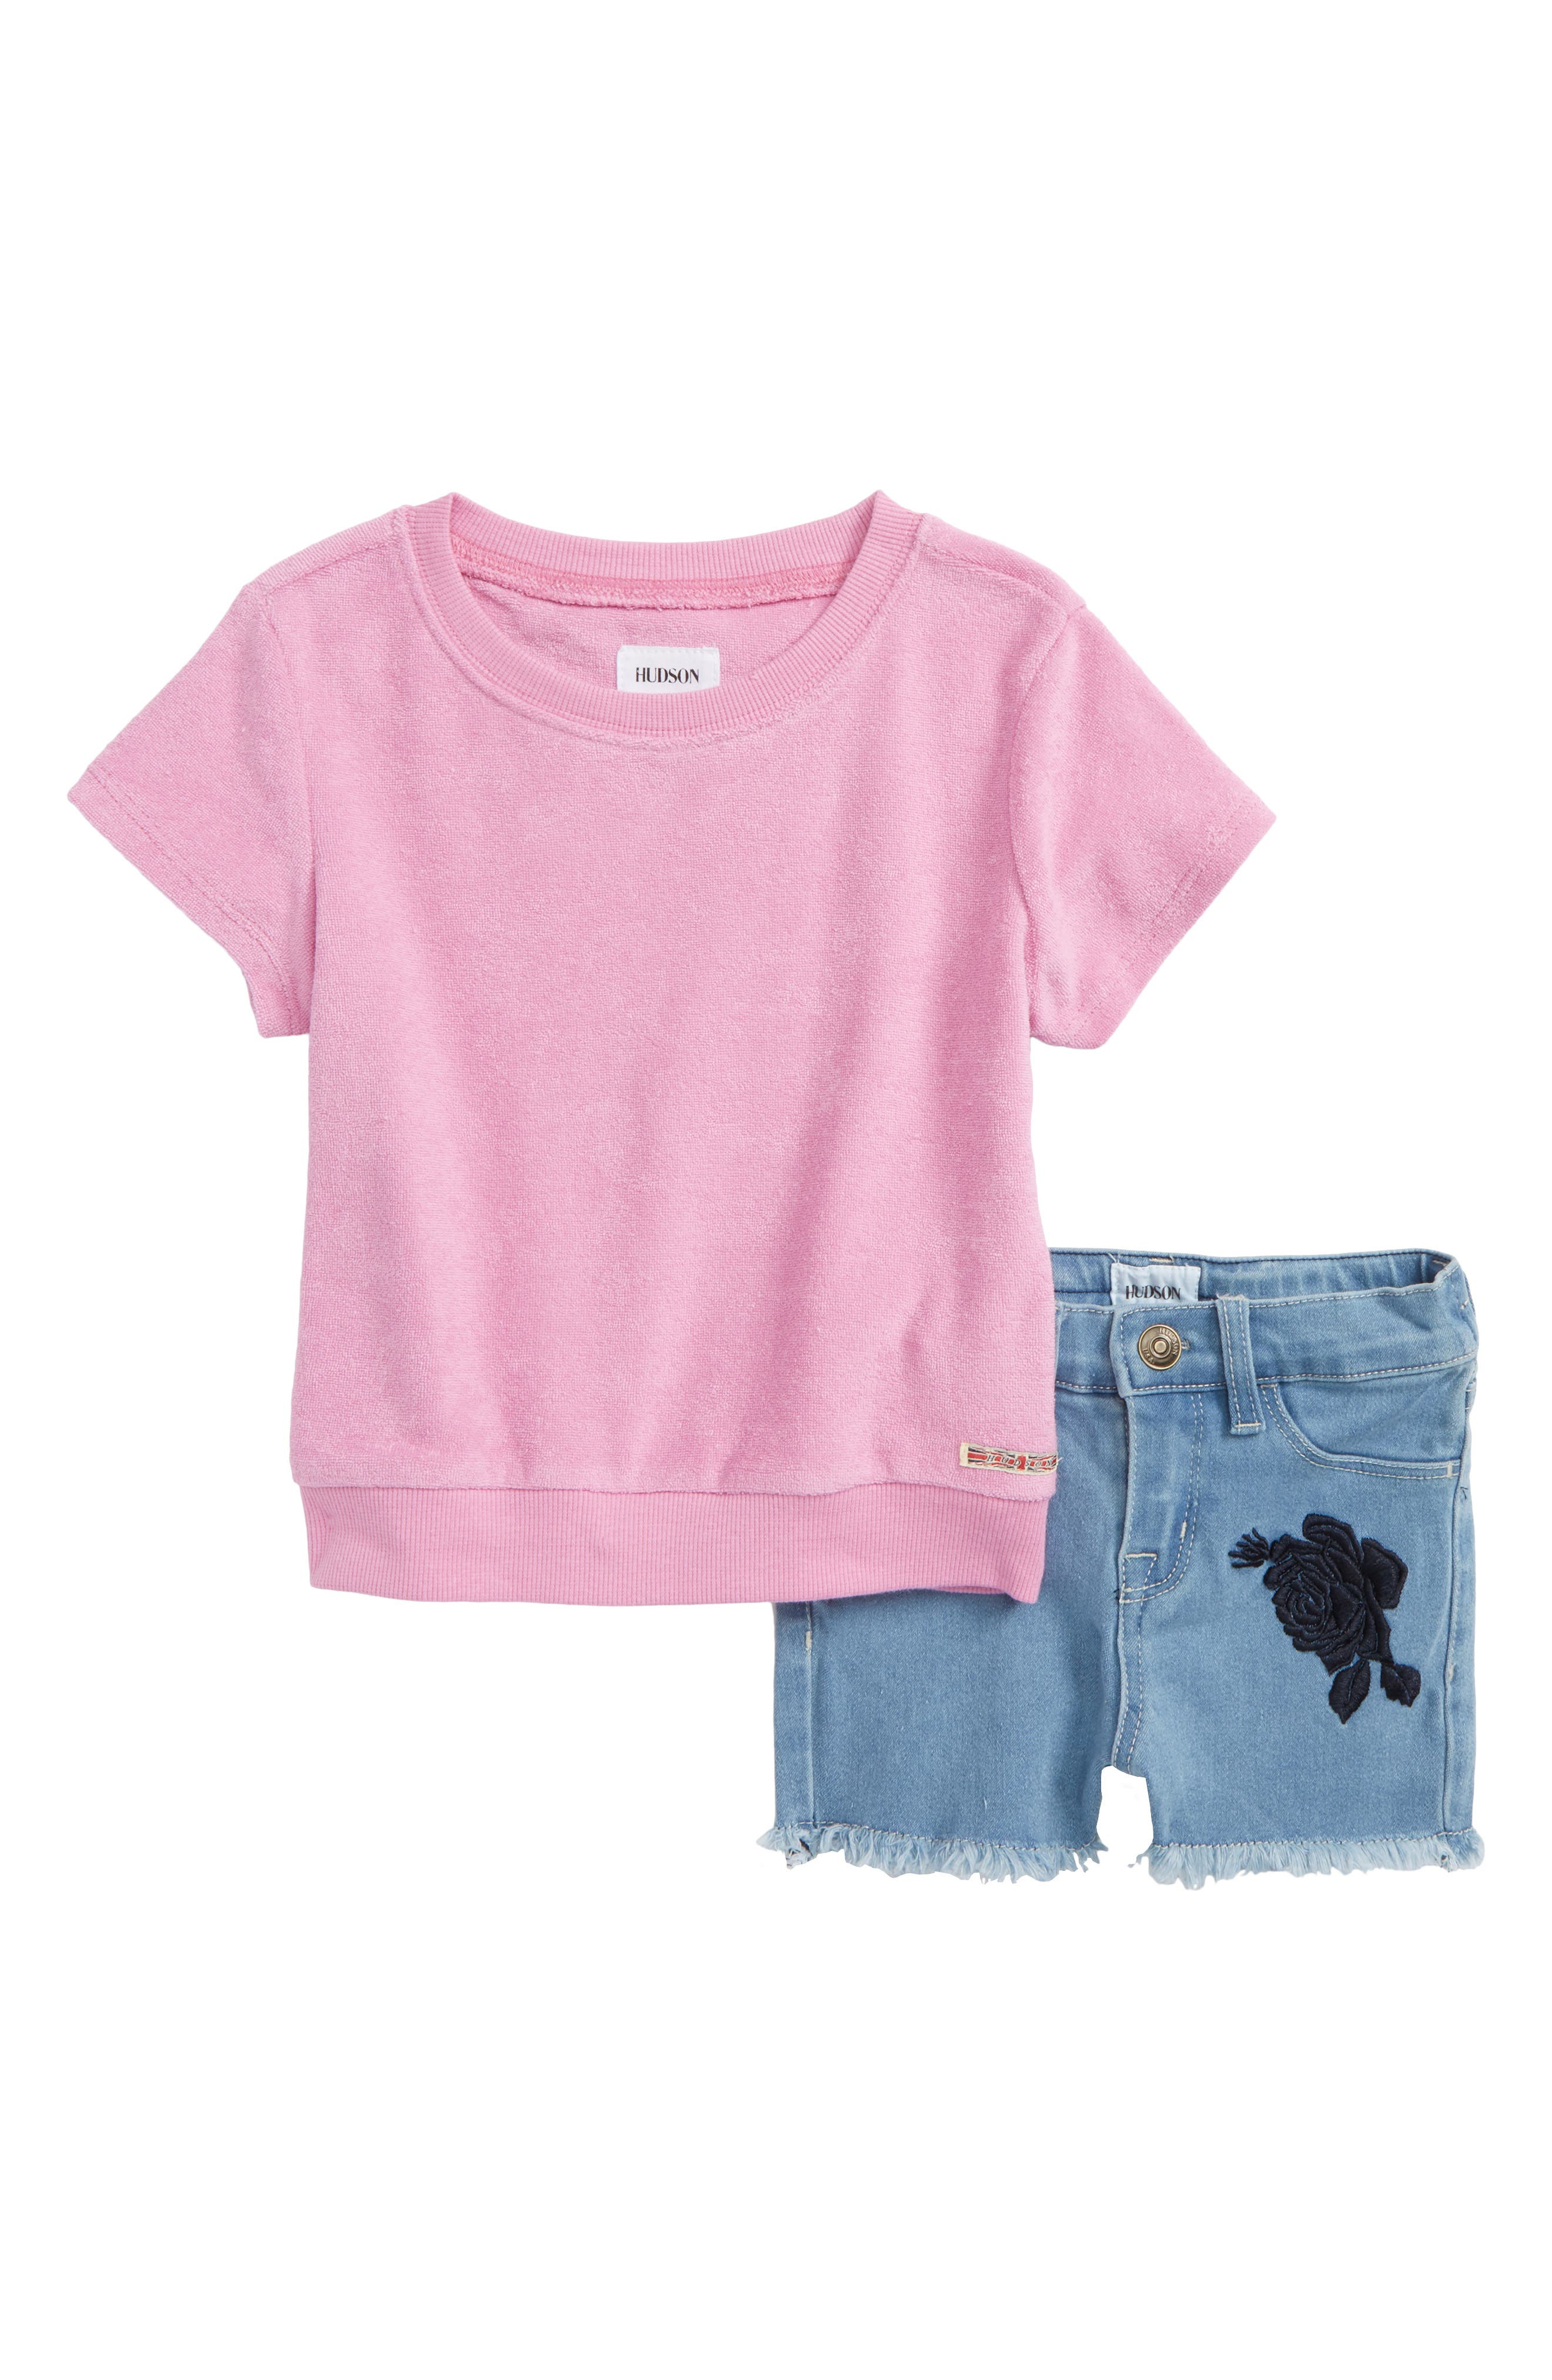 Hudson Kids French Terry Tee & Shorts Set (Toddler Girls)